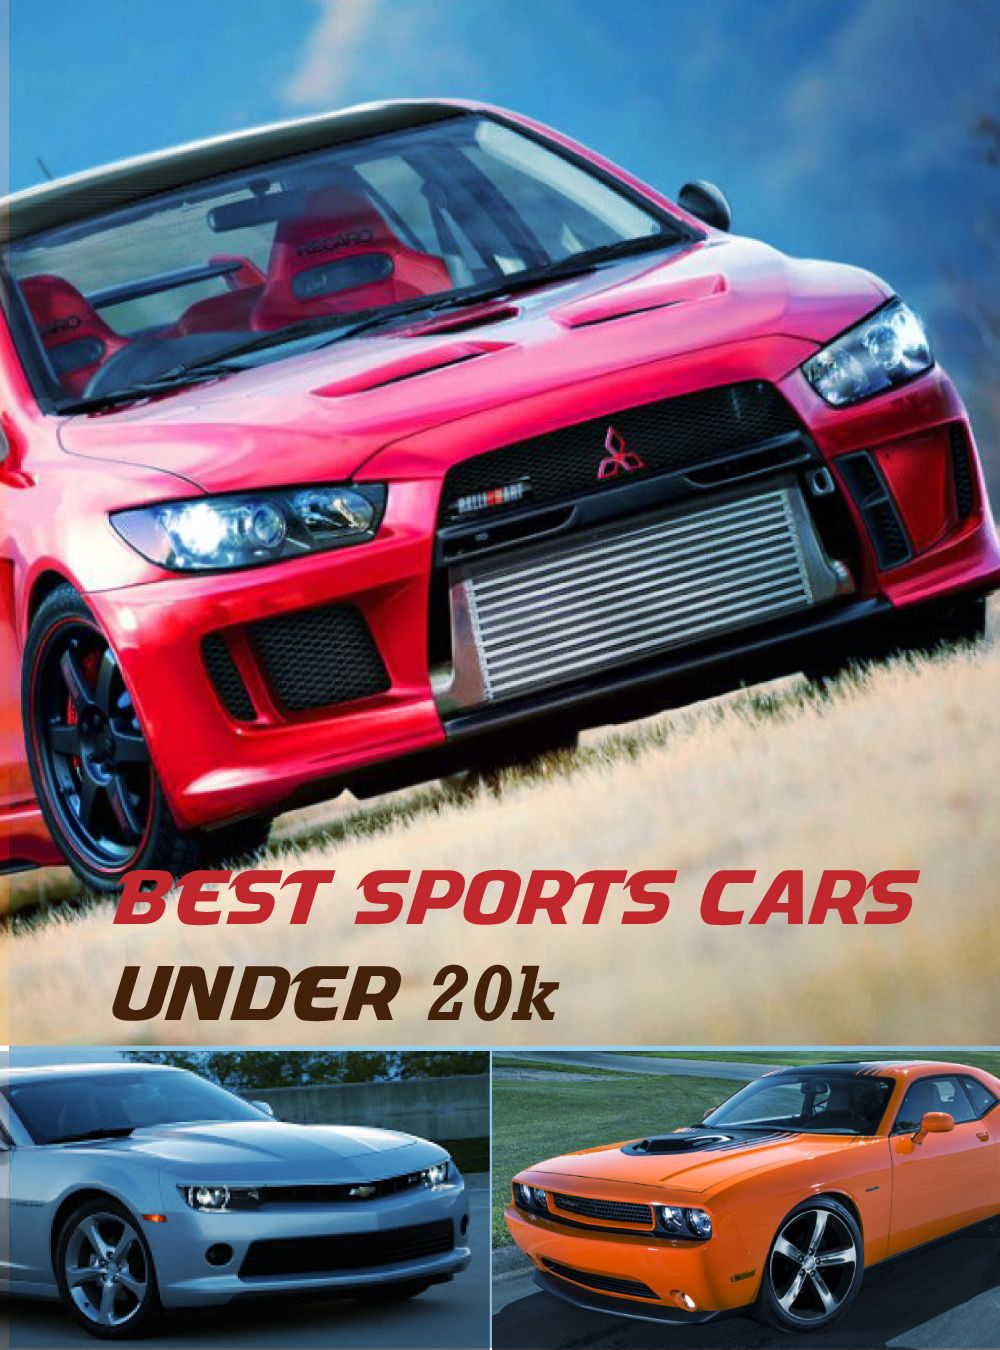 Best Sports Cars Under 20k In 2020 Cool Sports Cars Affordable Sports Cars Sports Cars